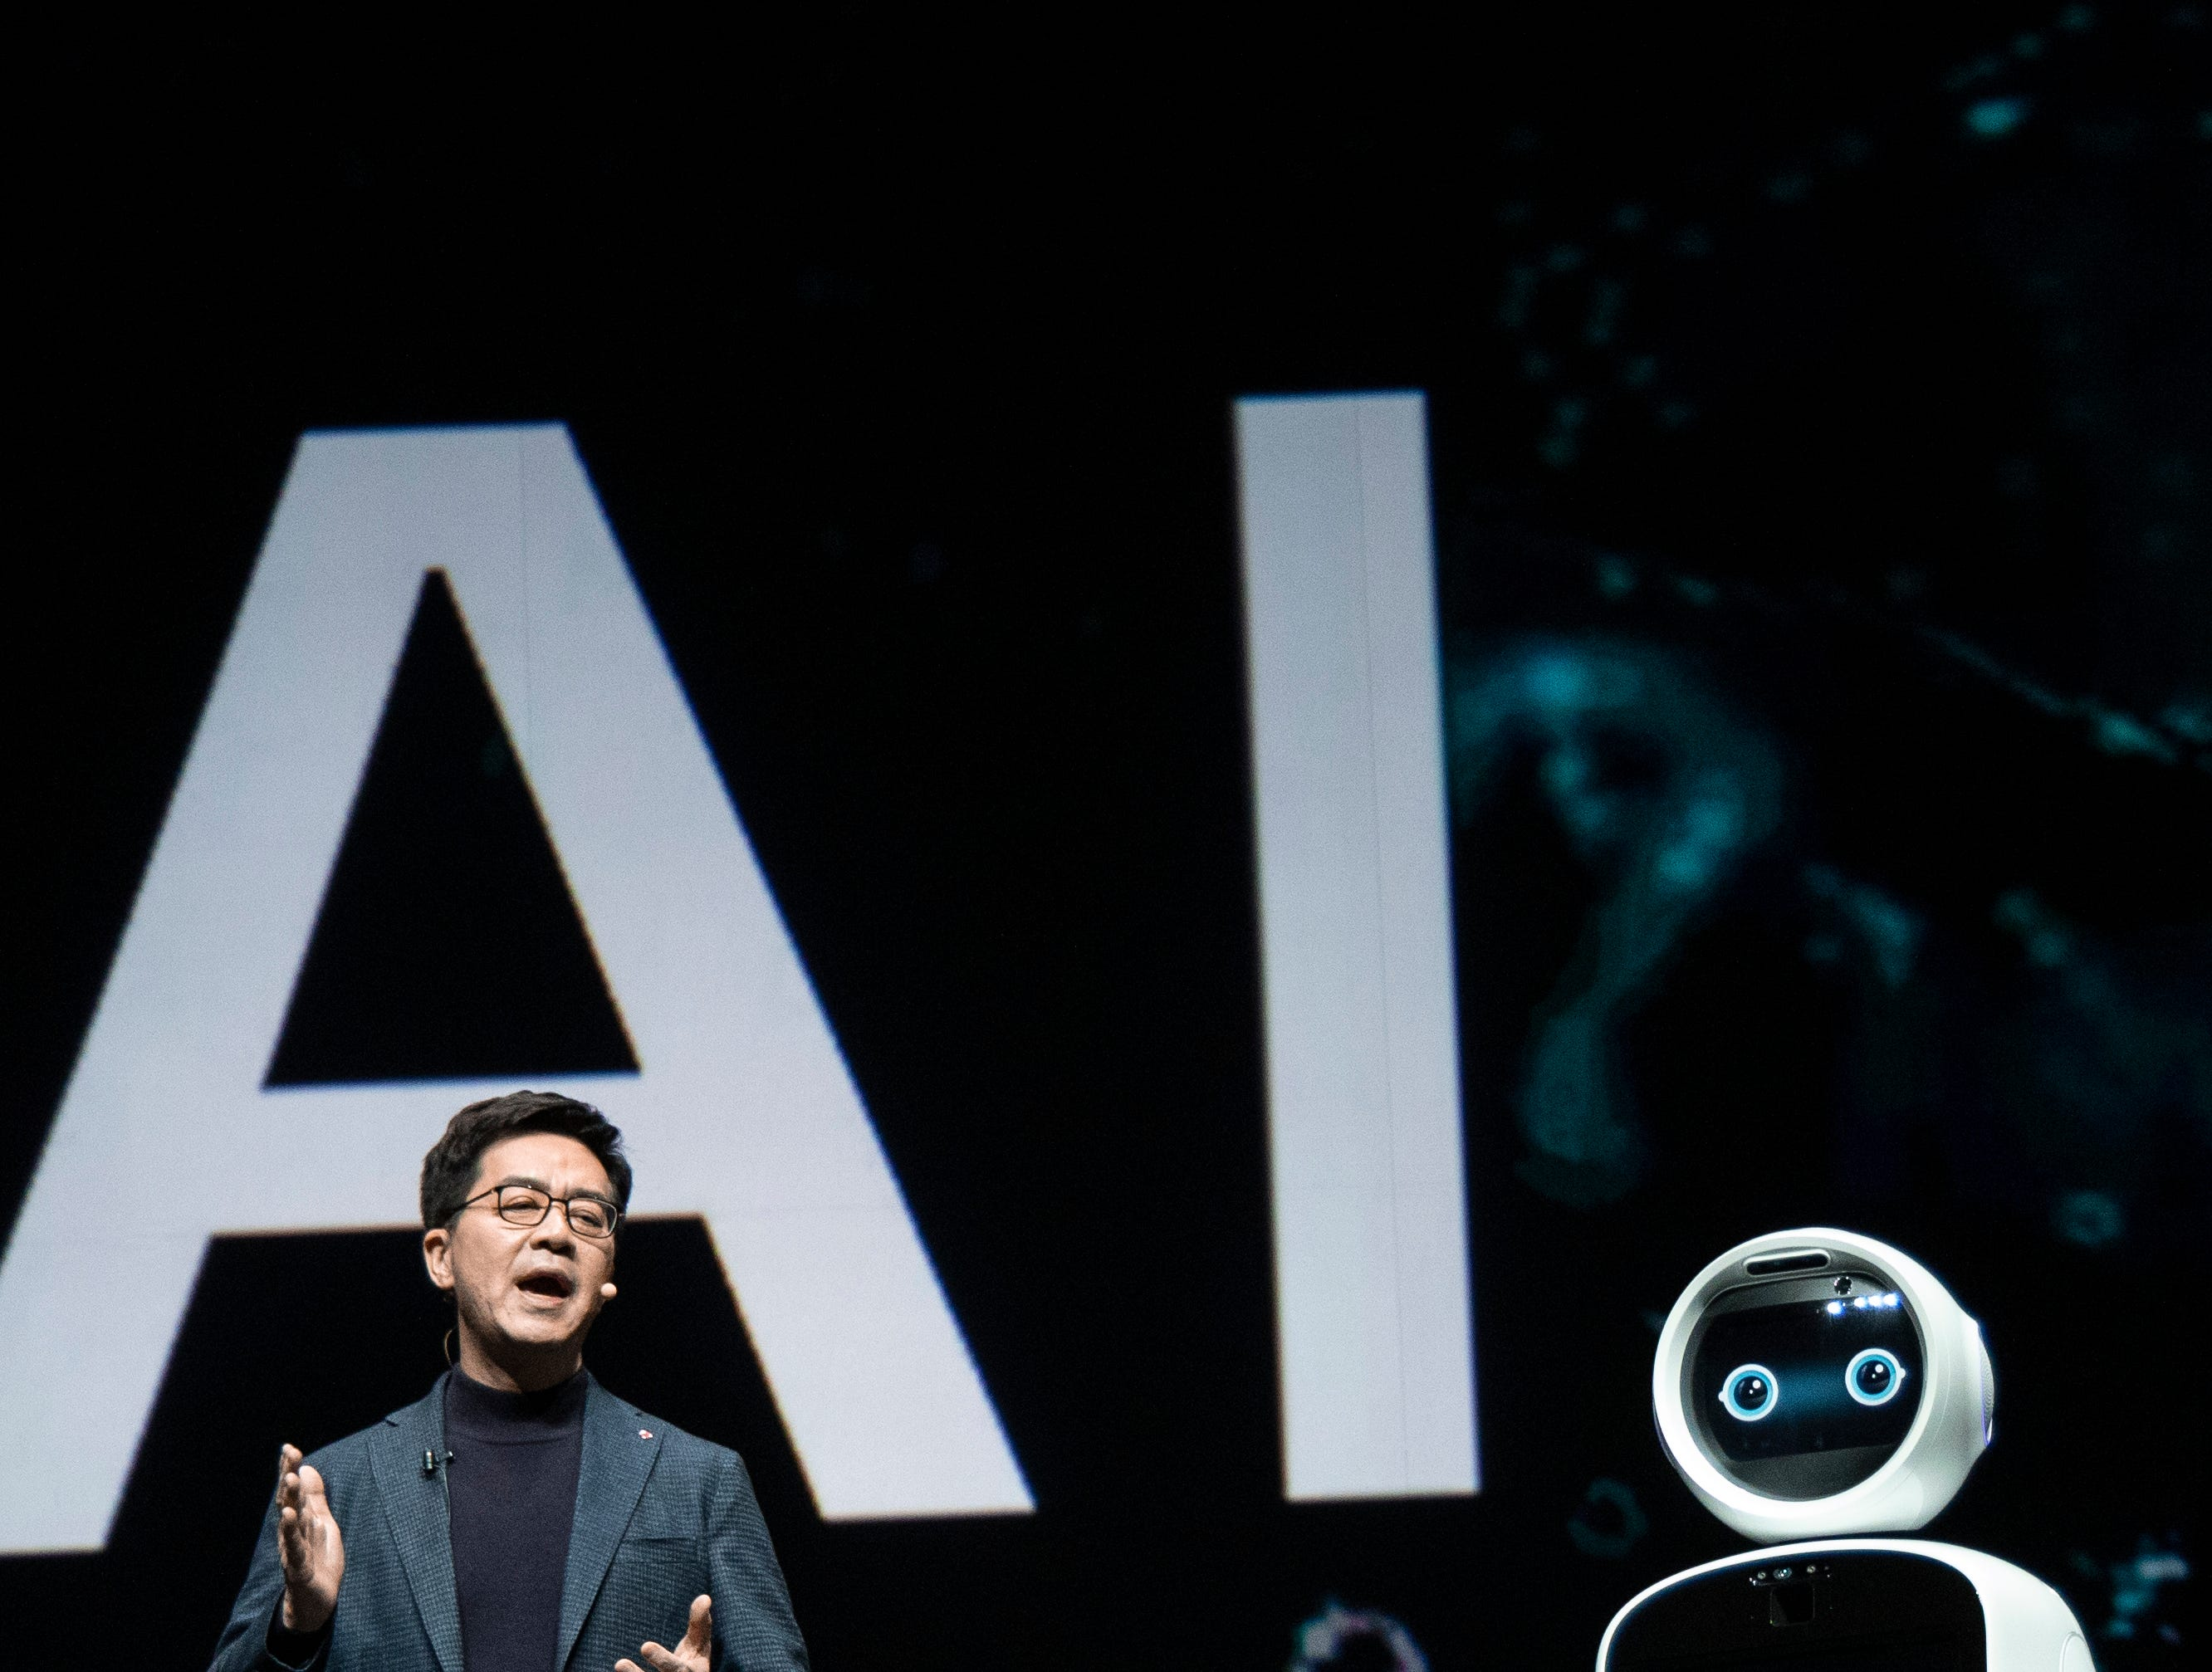 Dr. I.P. Park, LG Electronics president and CTO, ushers in the future of artificial intelligence while delivering the LG Pre CES keynote address during CES 2019 on Monday, Jan. 7, 2019, in Las Vegas.